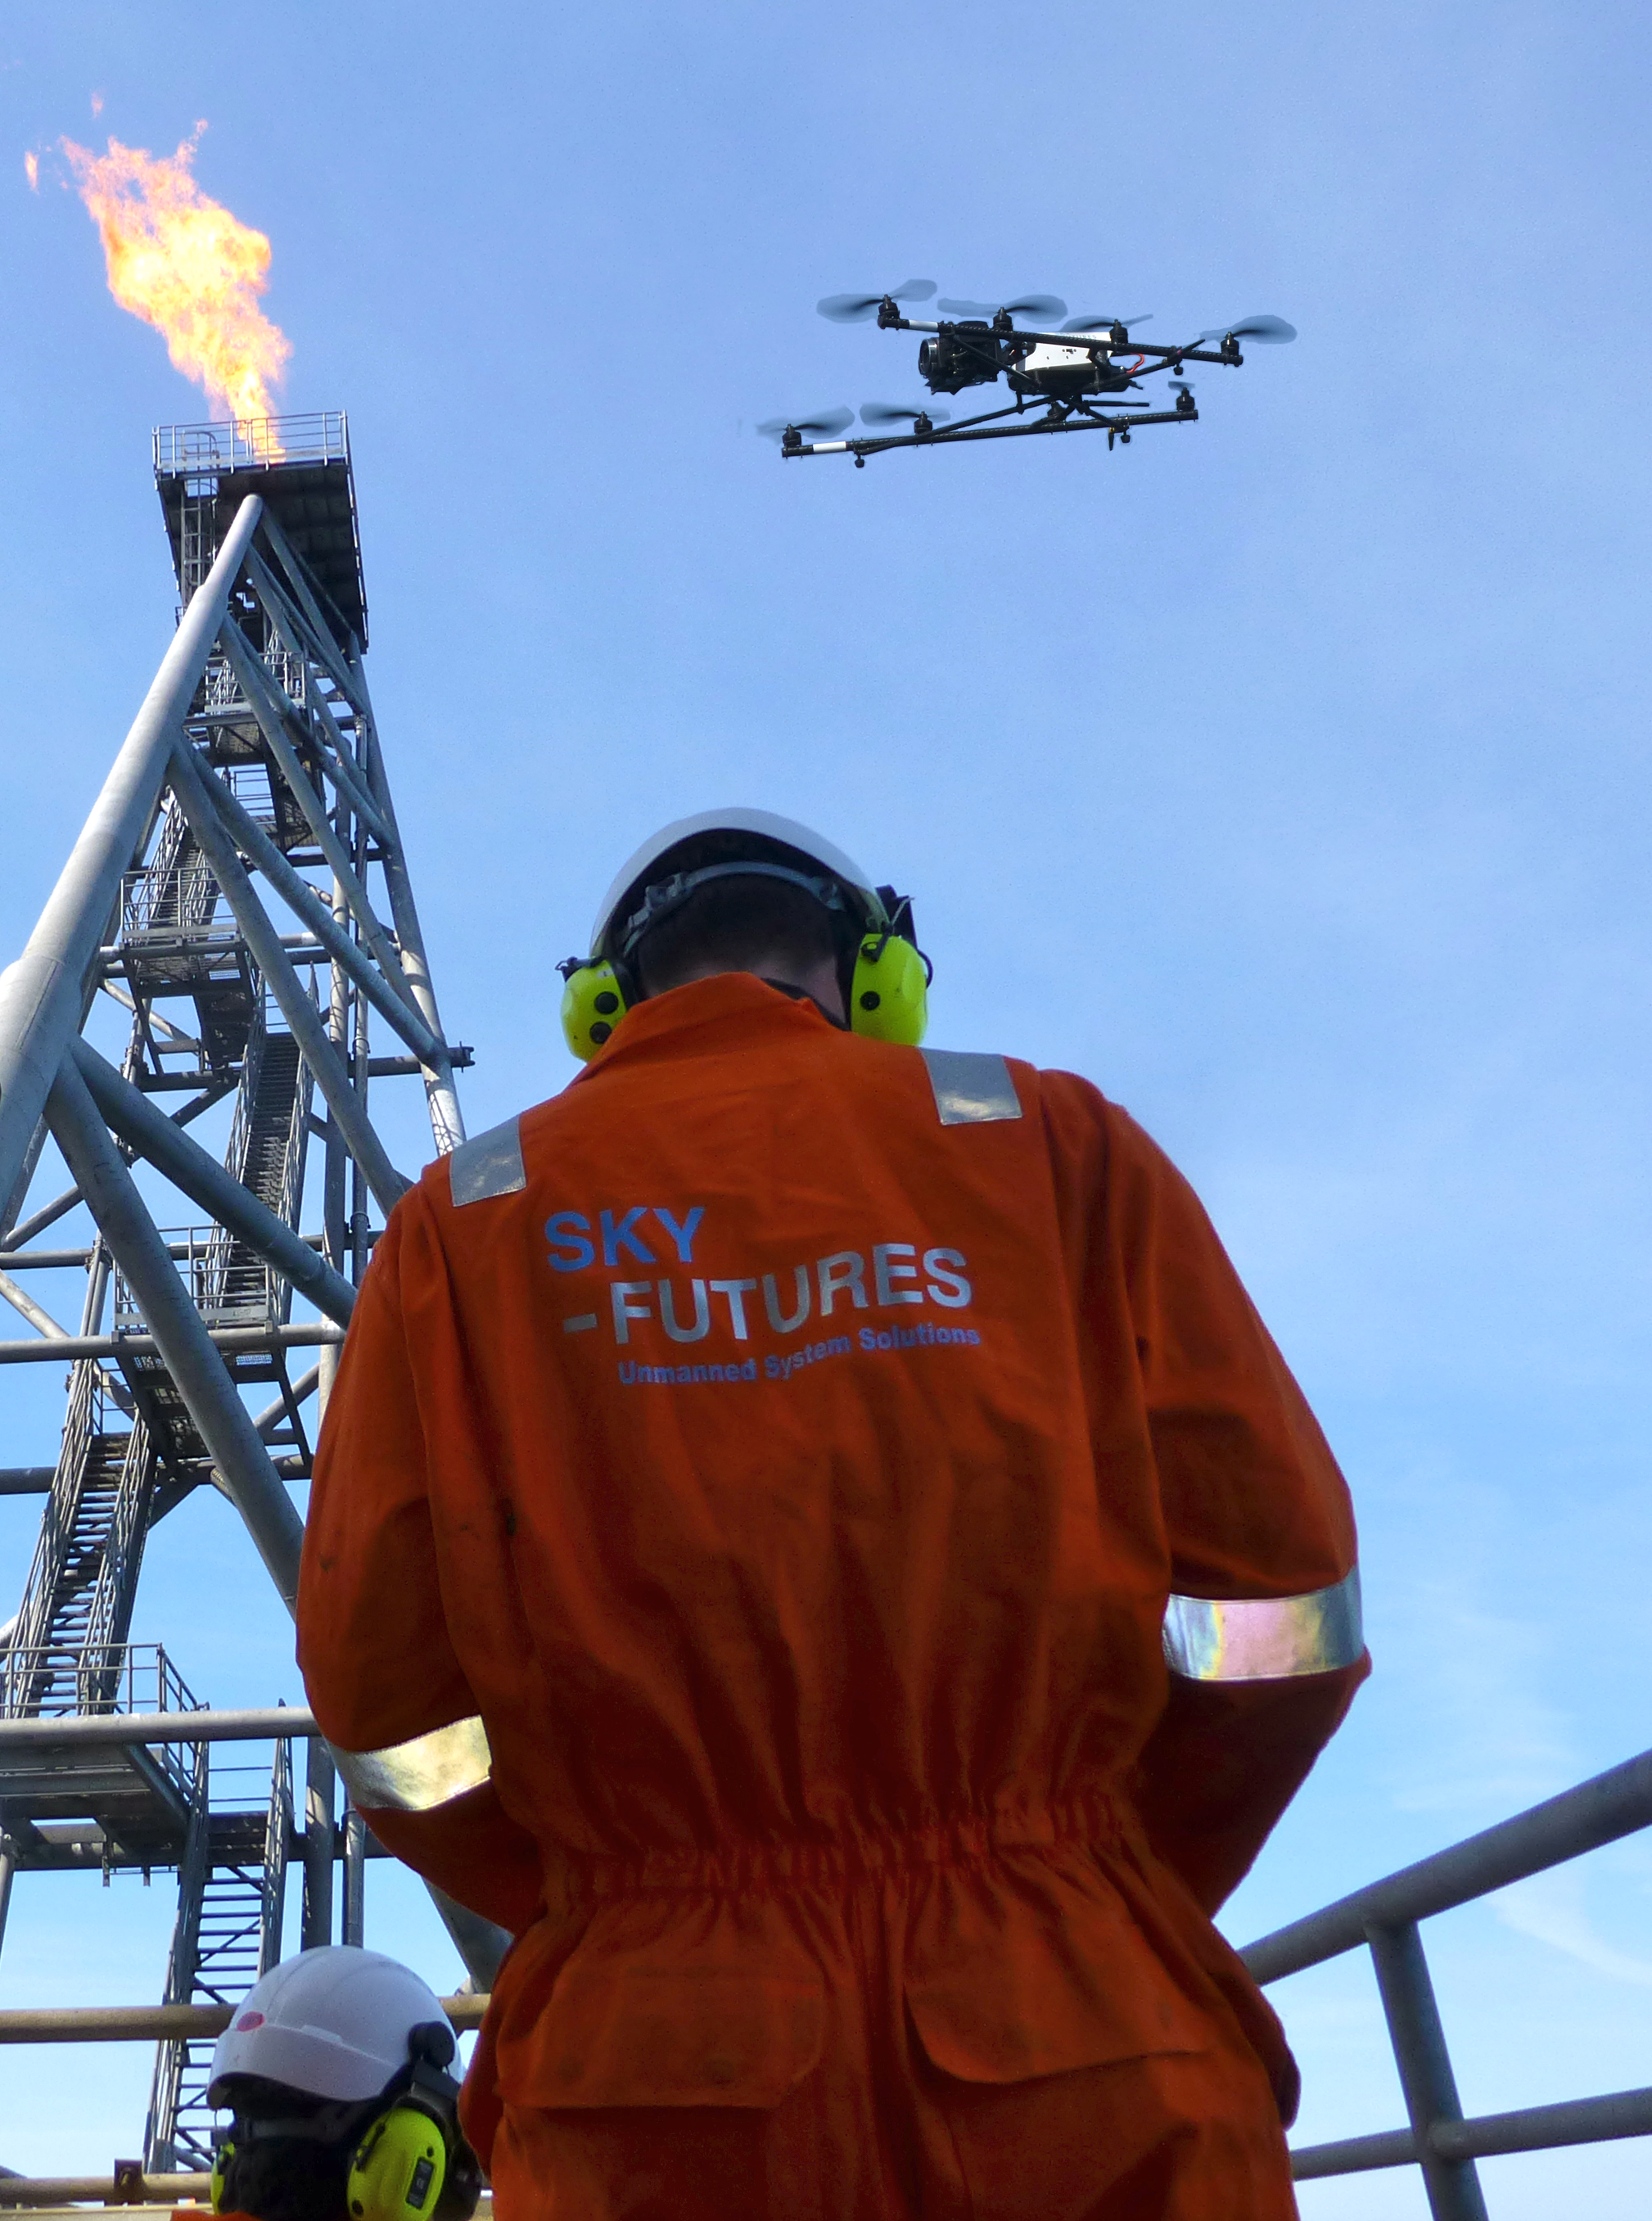 Drones used for oil and gas inspection